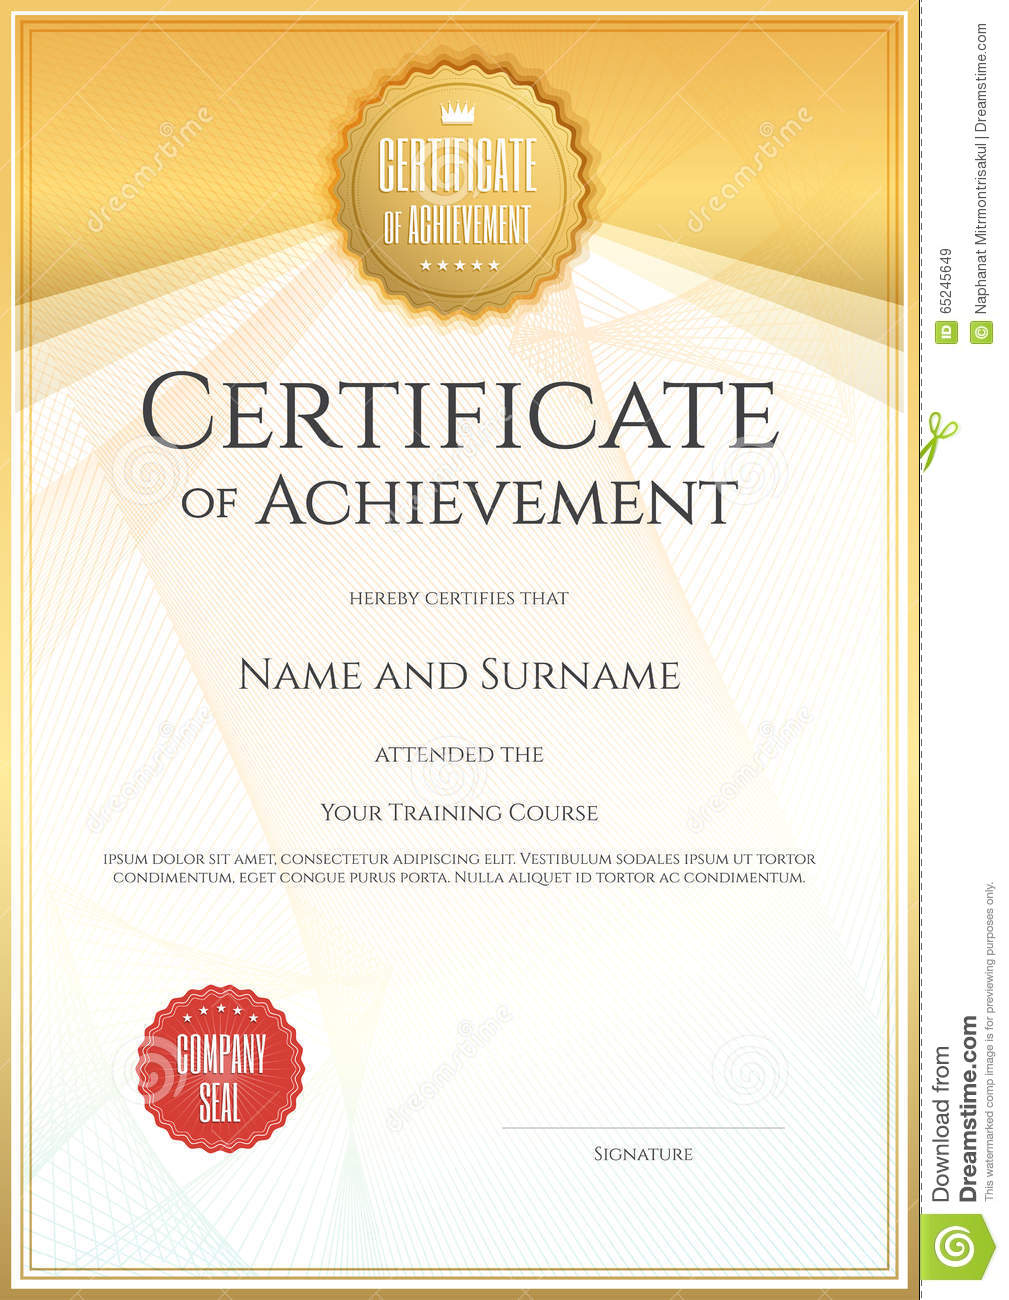 Certificate template in vector for achievement graduation comple certificate template in vector for achievement graduation comple yadclub Choice Image